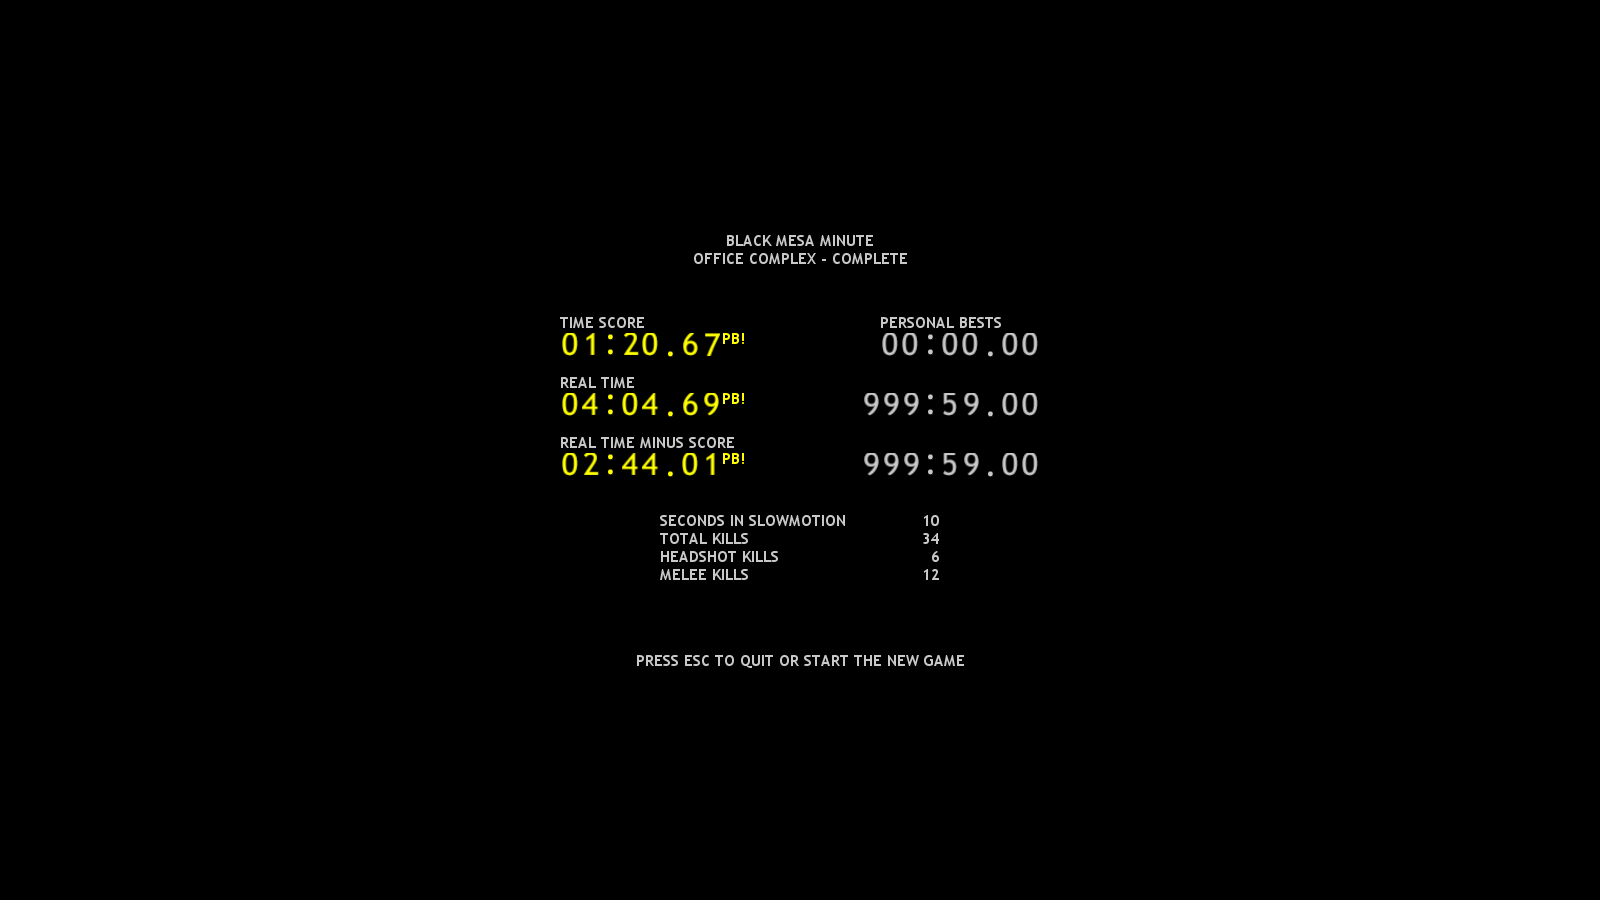 Black Mesa Minute results screen image - Half-Payne (now with Twitch